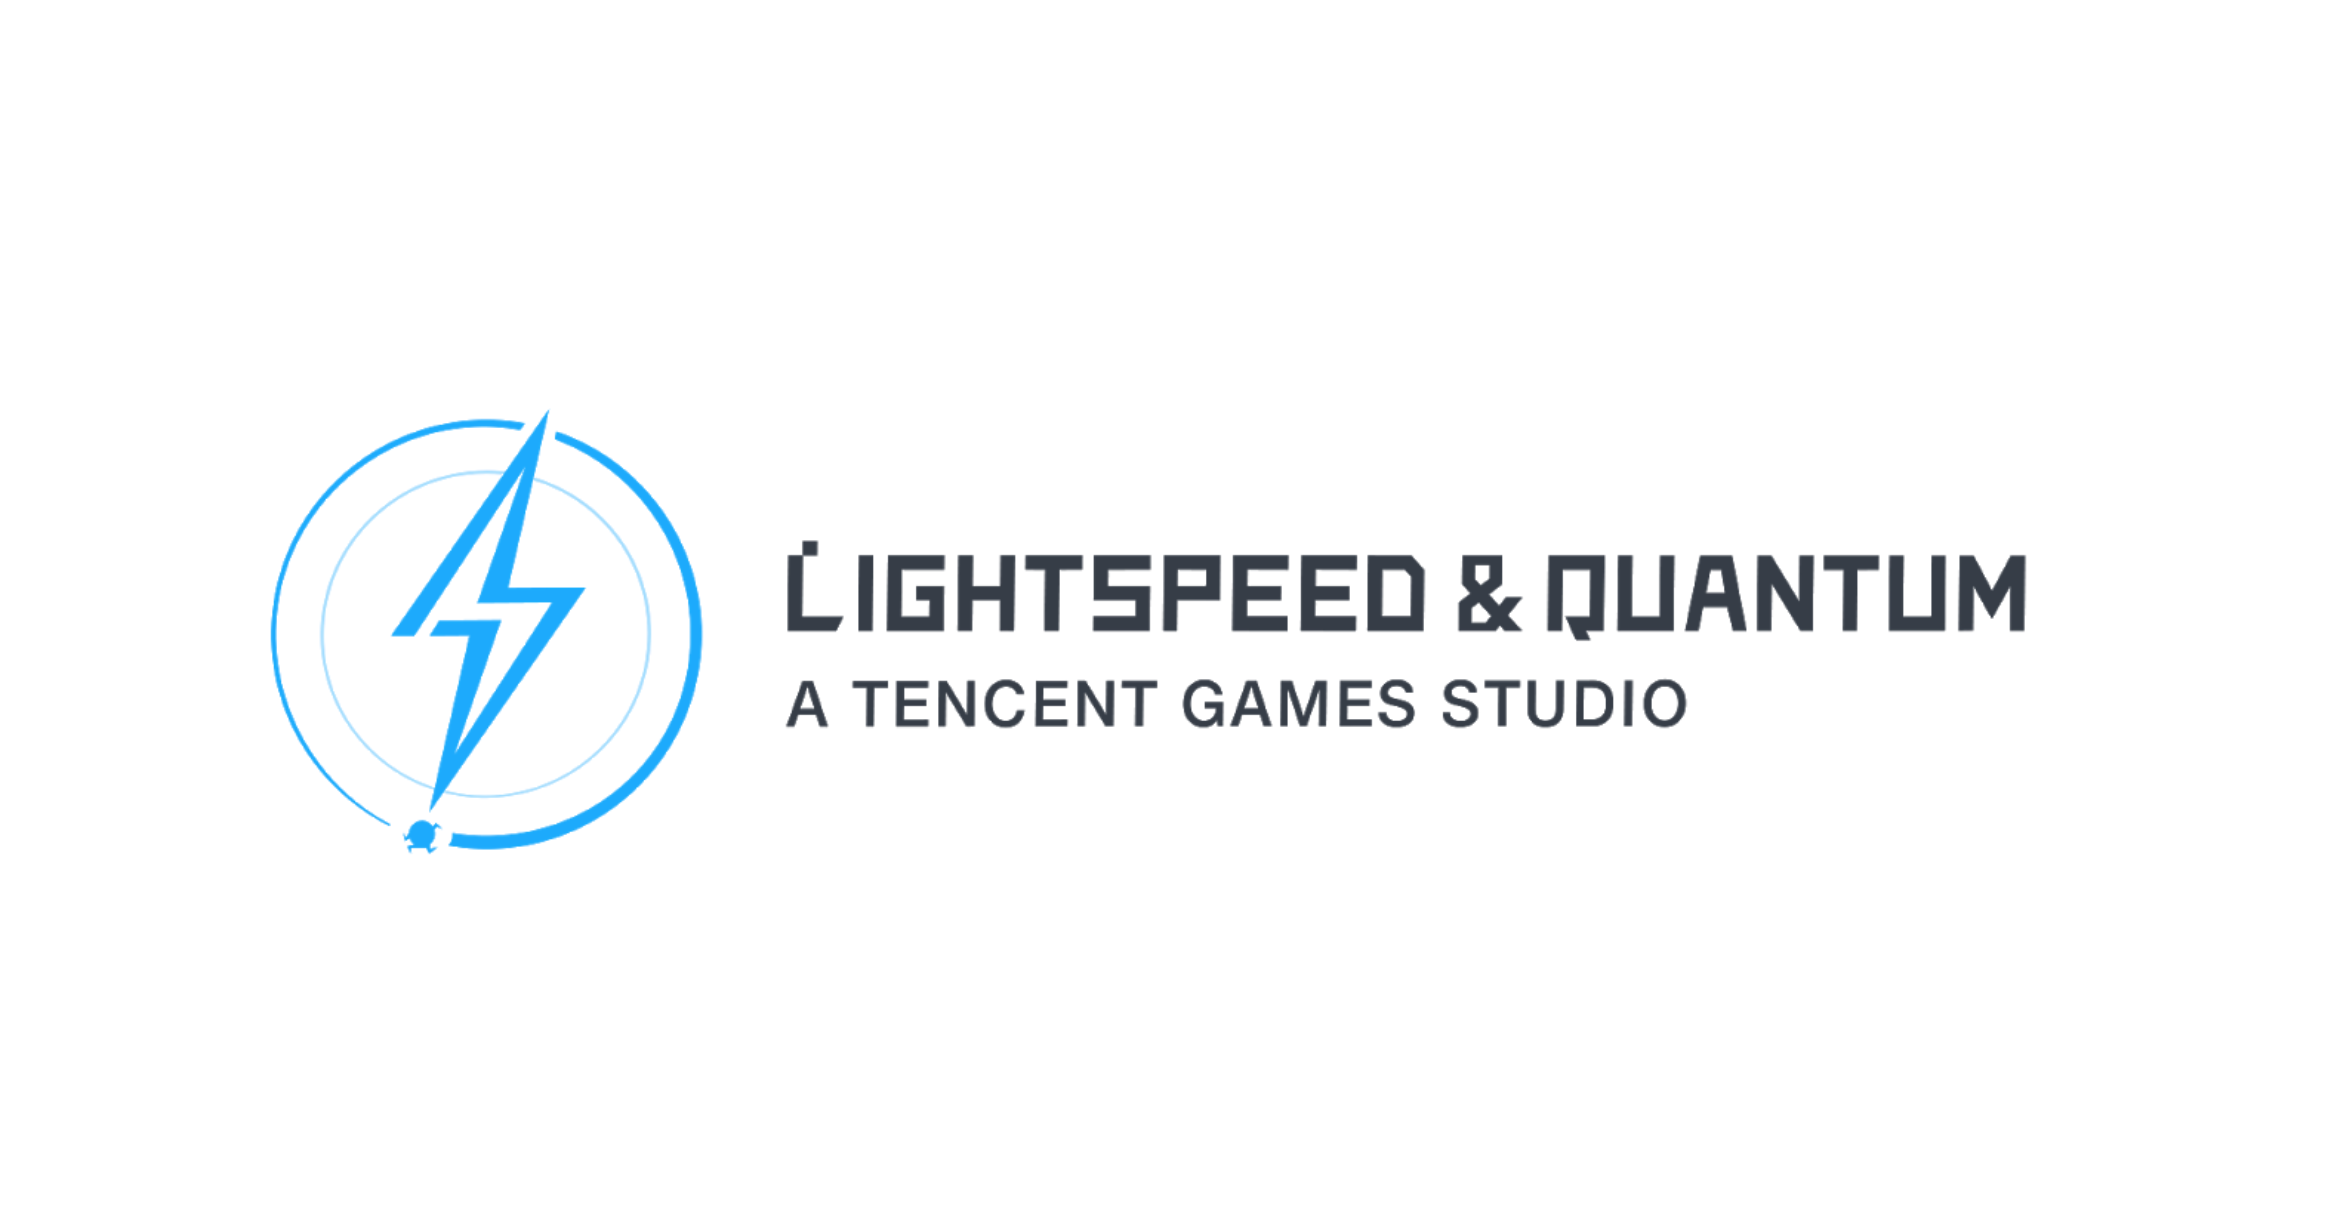 tencent to open new west coast studio to work on aaa next gen console game business news mcv develop aaa next gen console game